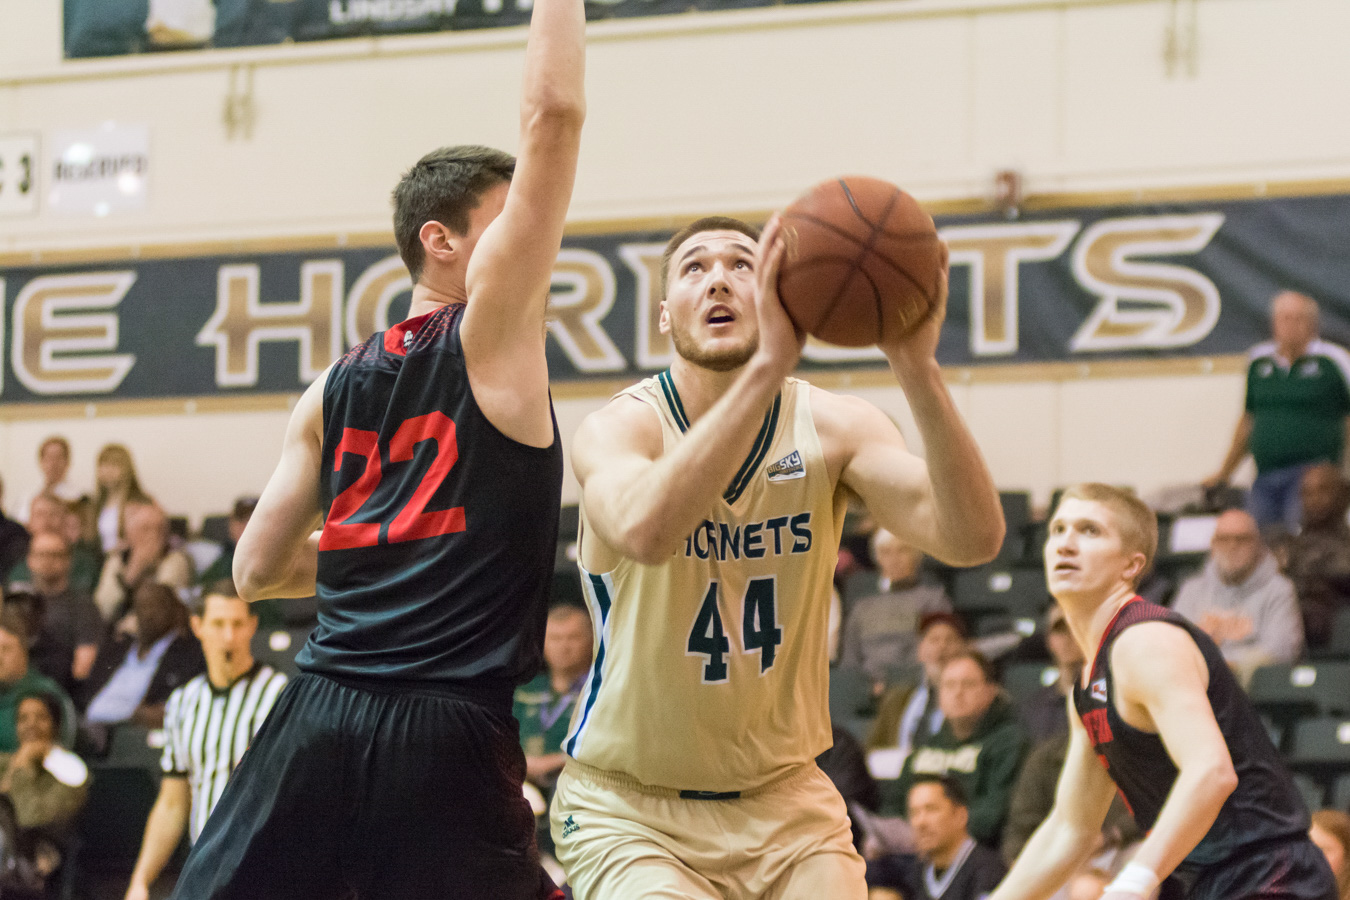 Sacramento State senior center Eric Stuteville attempts a shot against Ivan Madunic of Southern Utah Saturday at the Nest. (Photo by Matthew Dyer)